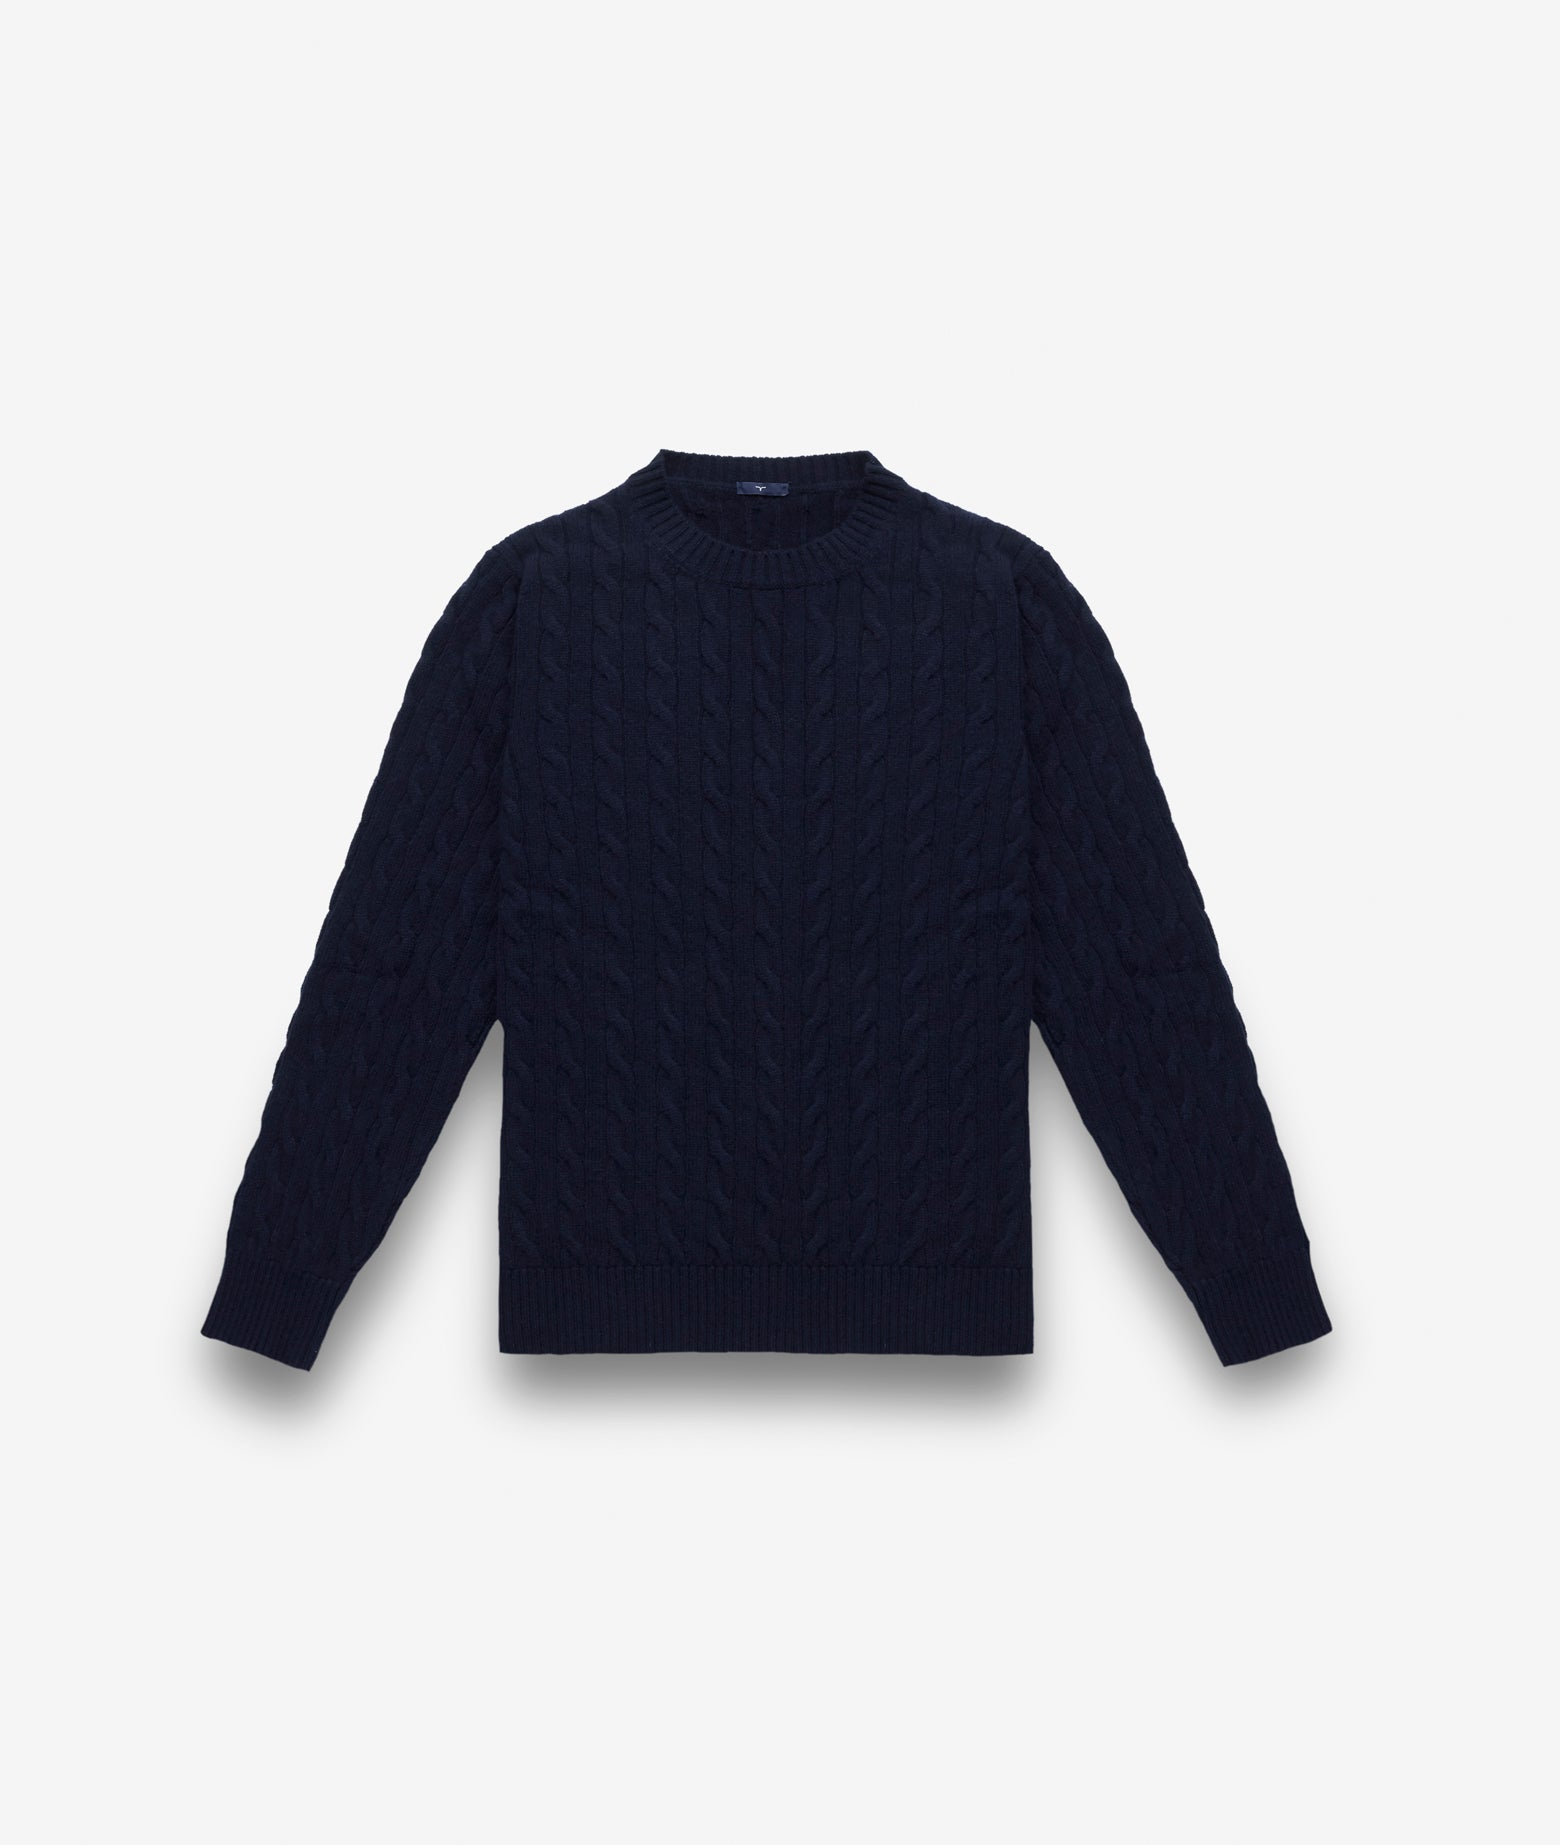 Small cable round neck